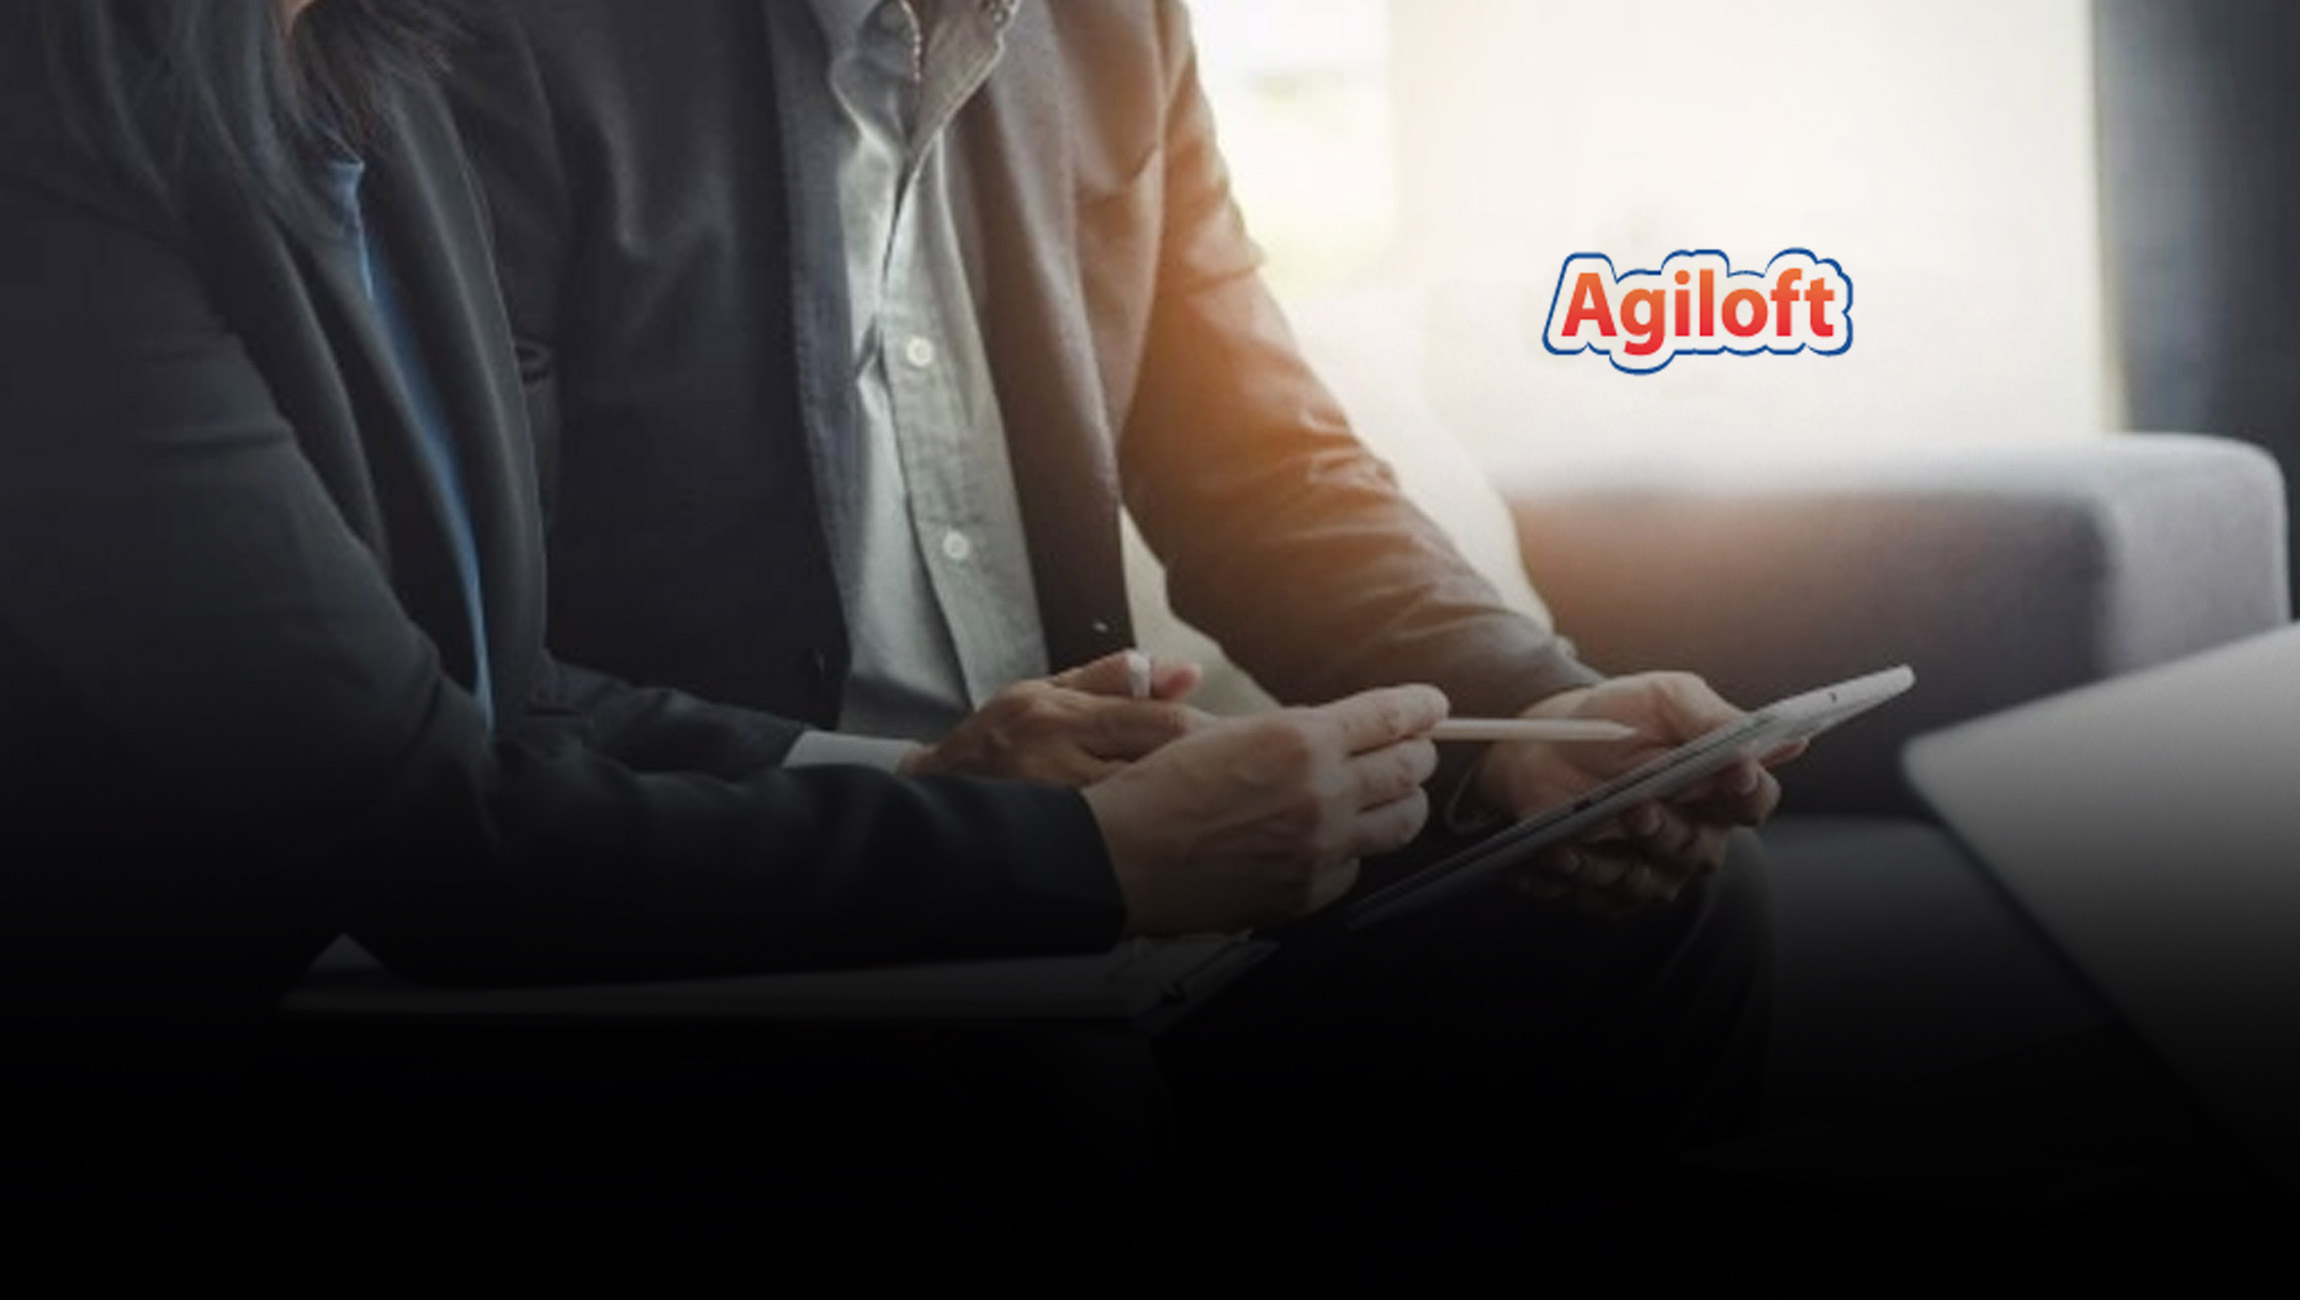 Agiloft Ranked Value and Customer Leader in Spend Matters' Spring 2021 SolutionMap for Contract Lifecycle Management